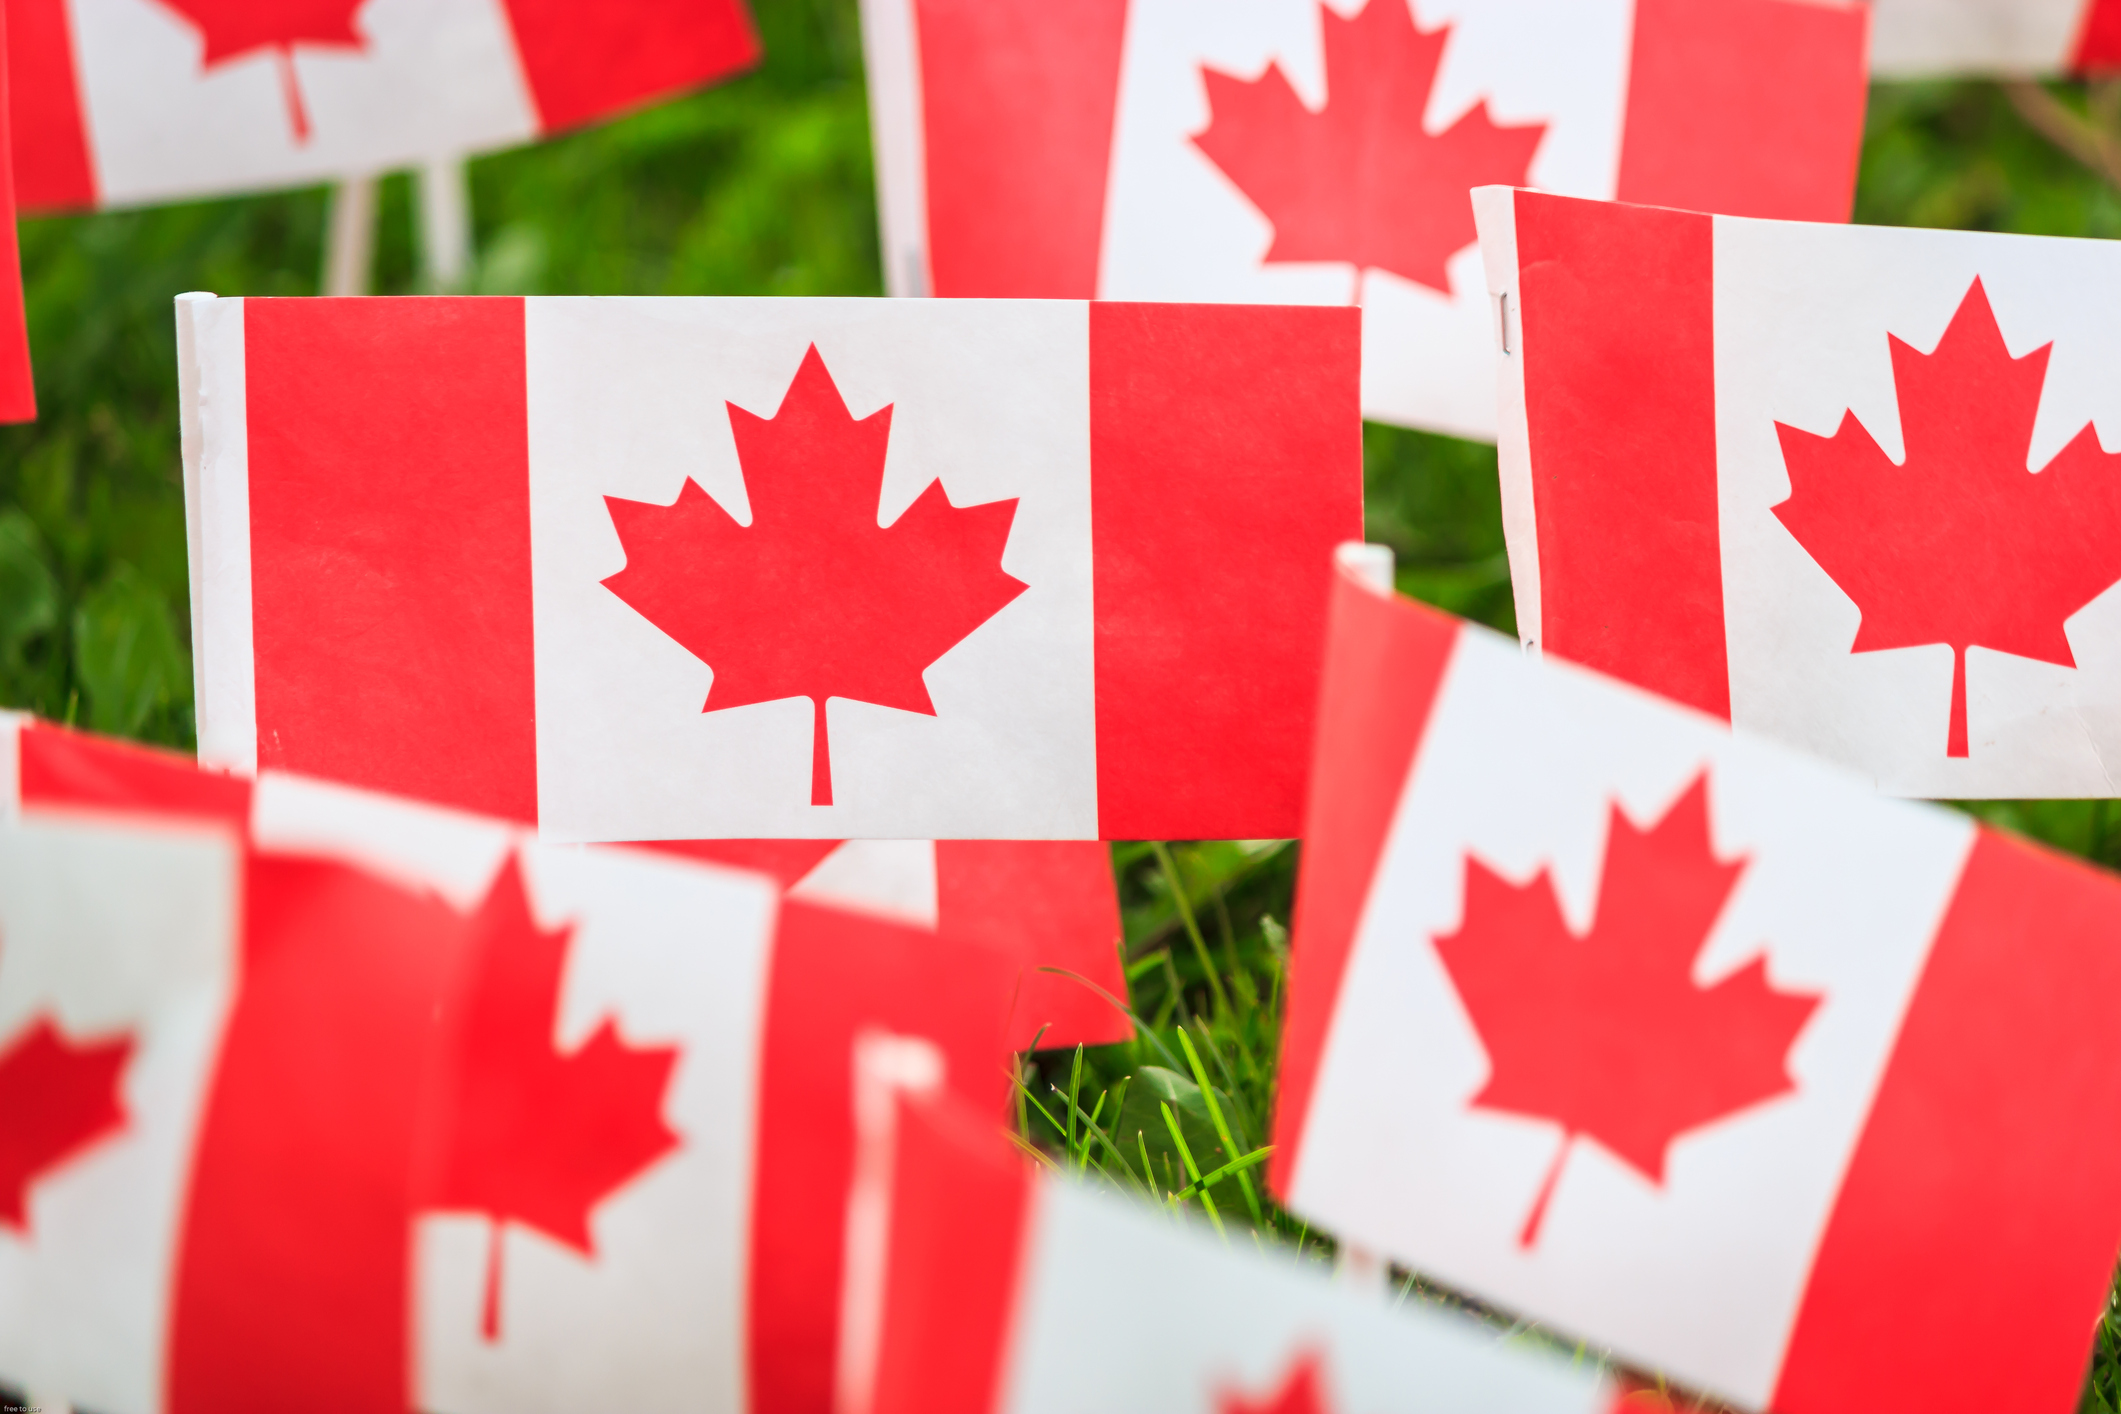 Miniature Canadian flags in a field